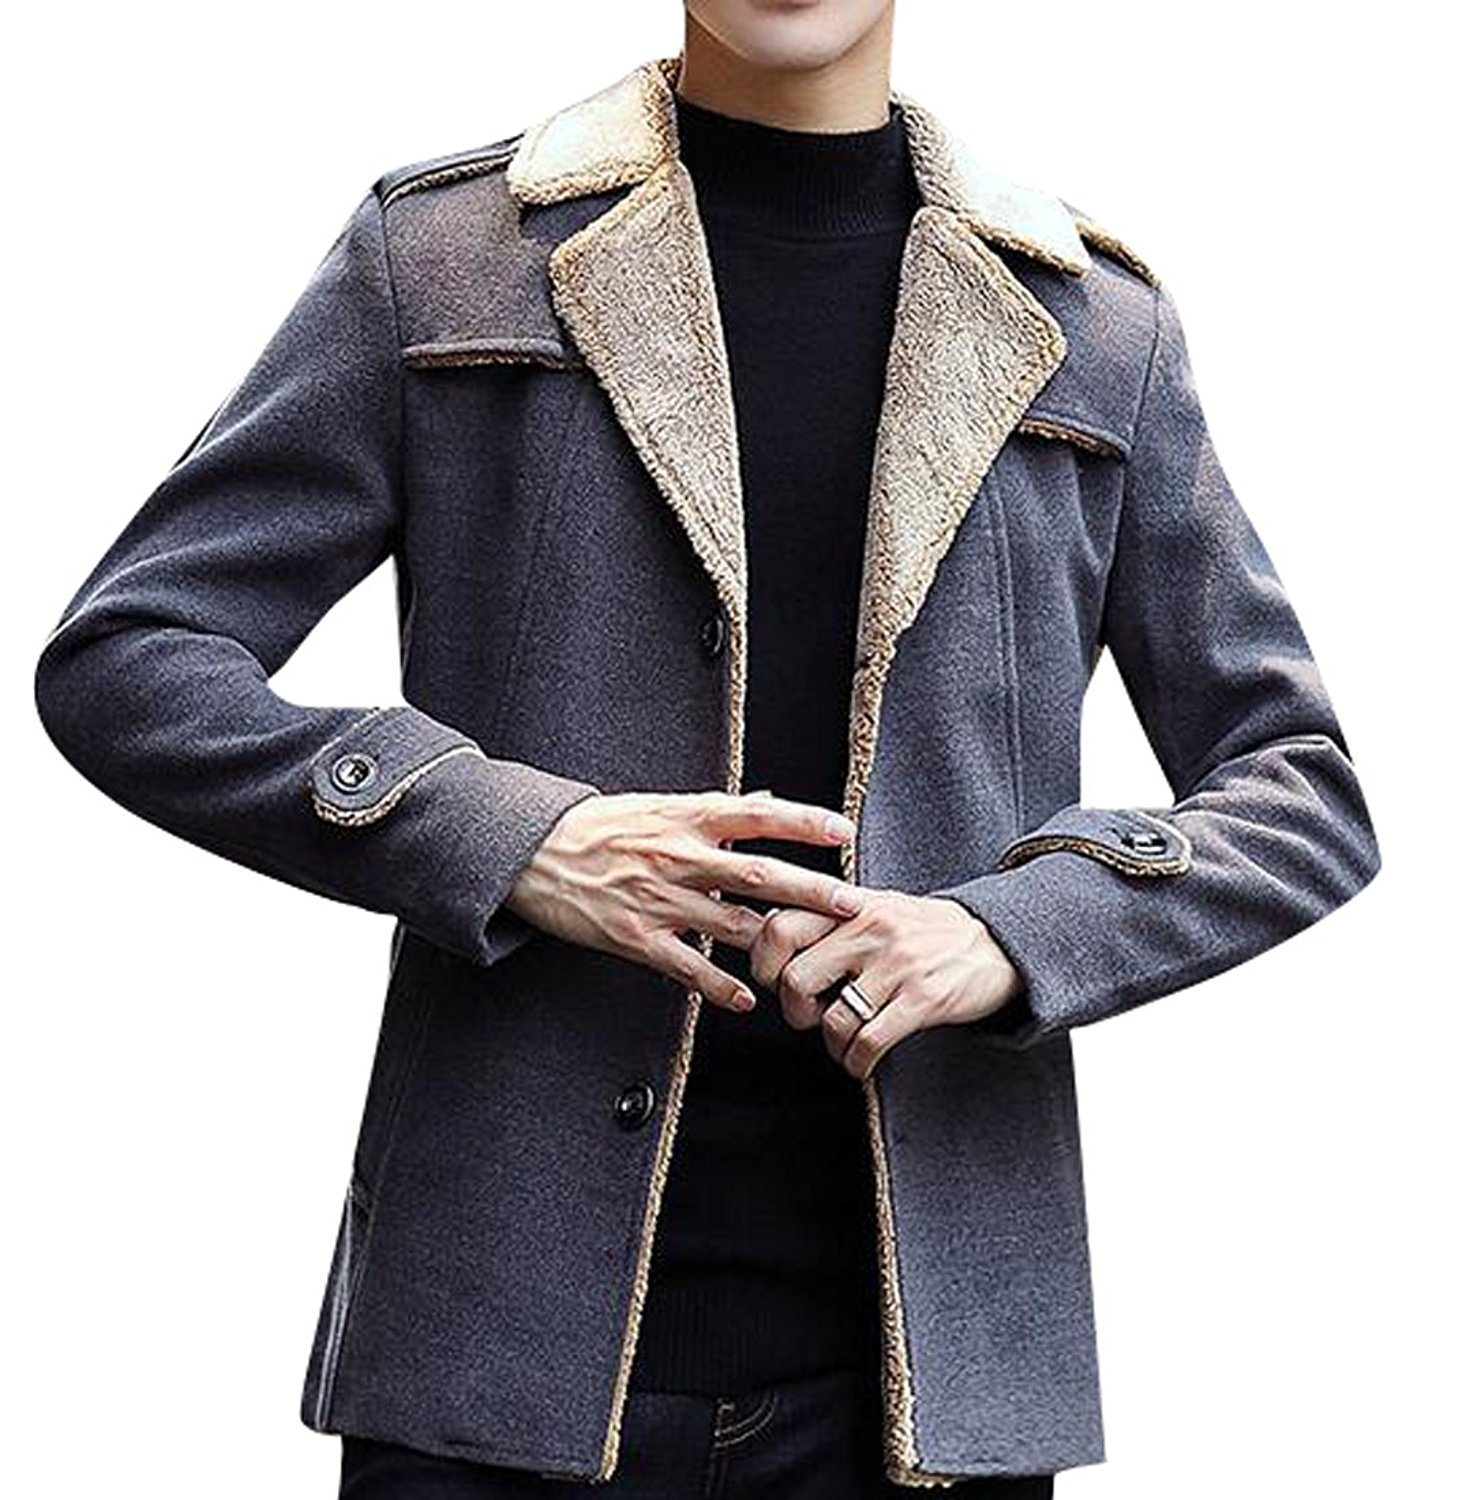 ARTFFEL Men Faux Suede Warm Winter Thicken Lamb Wool Lined Quilted Jacket Coat Outerwear